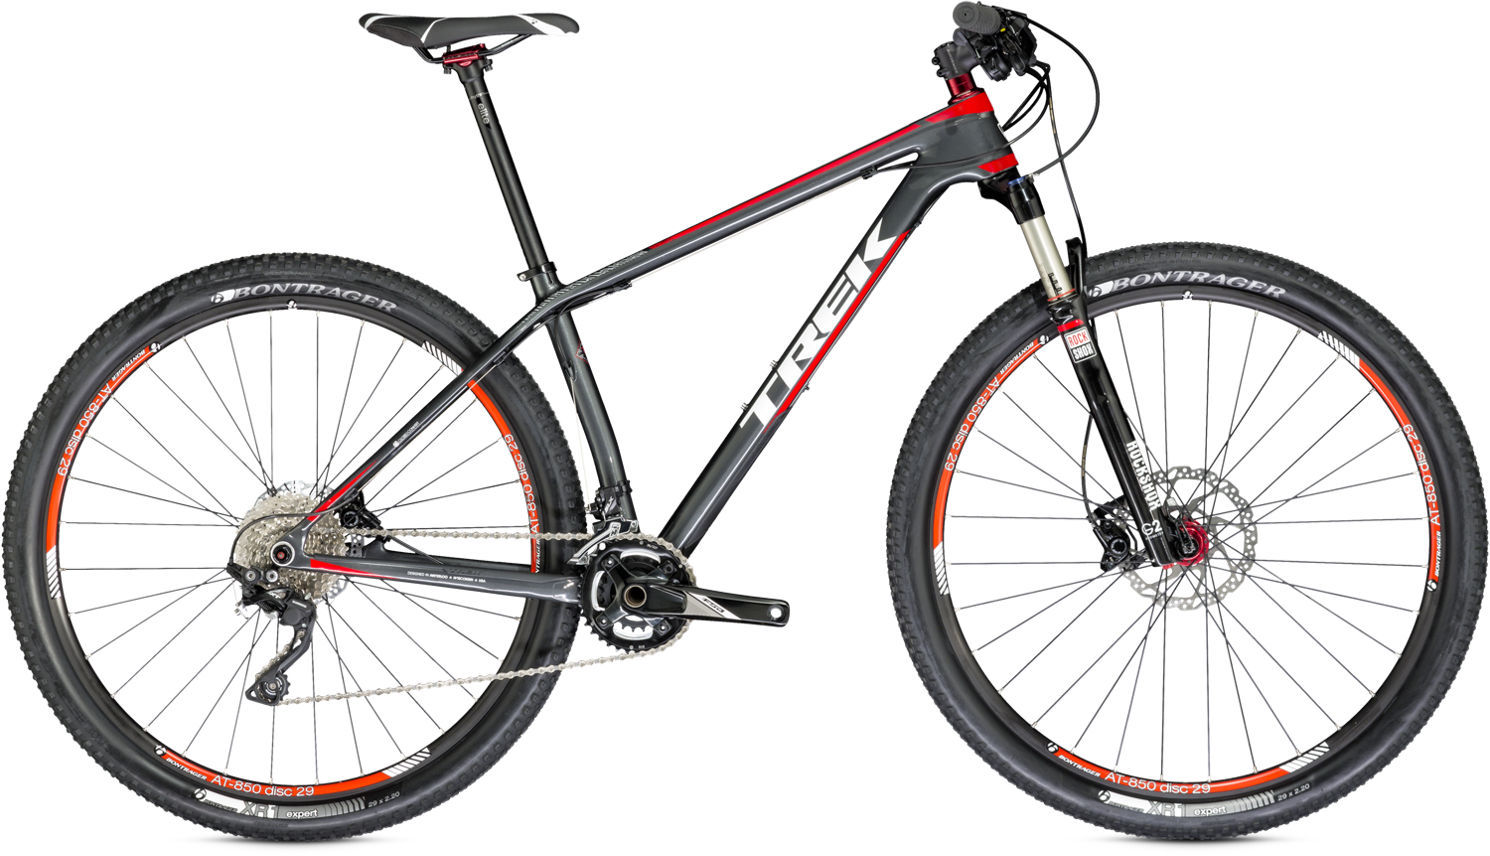 Trek Bikes - The world's best bikes and cycling gear ...